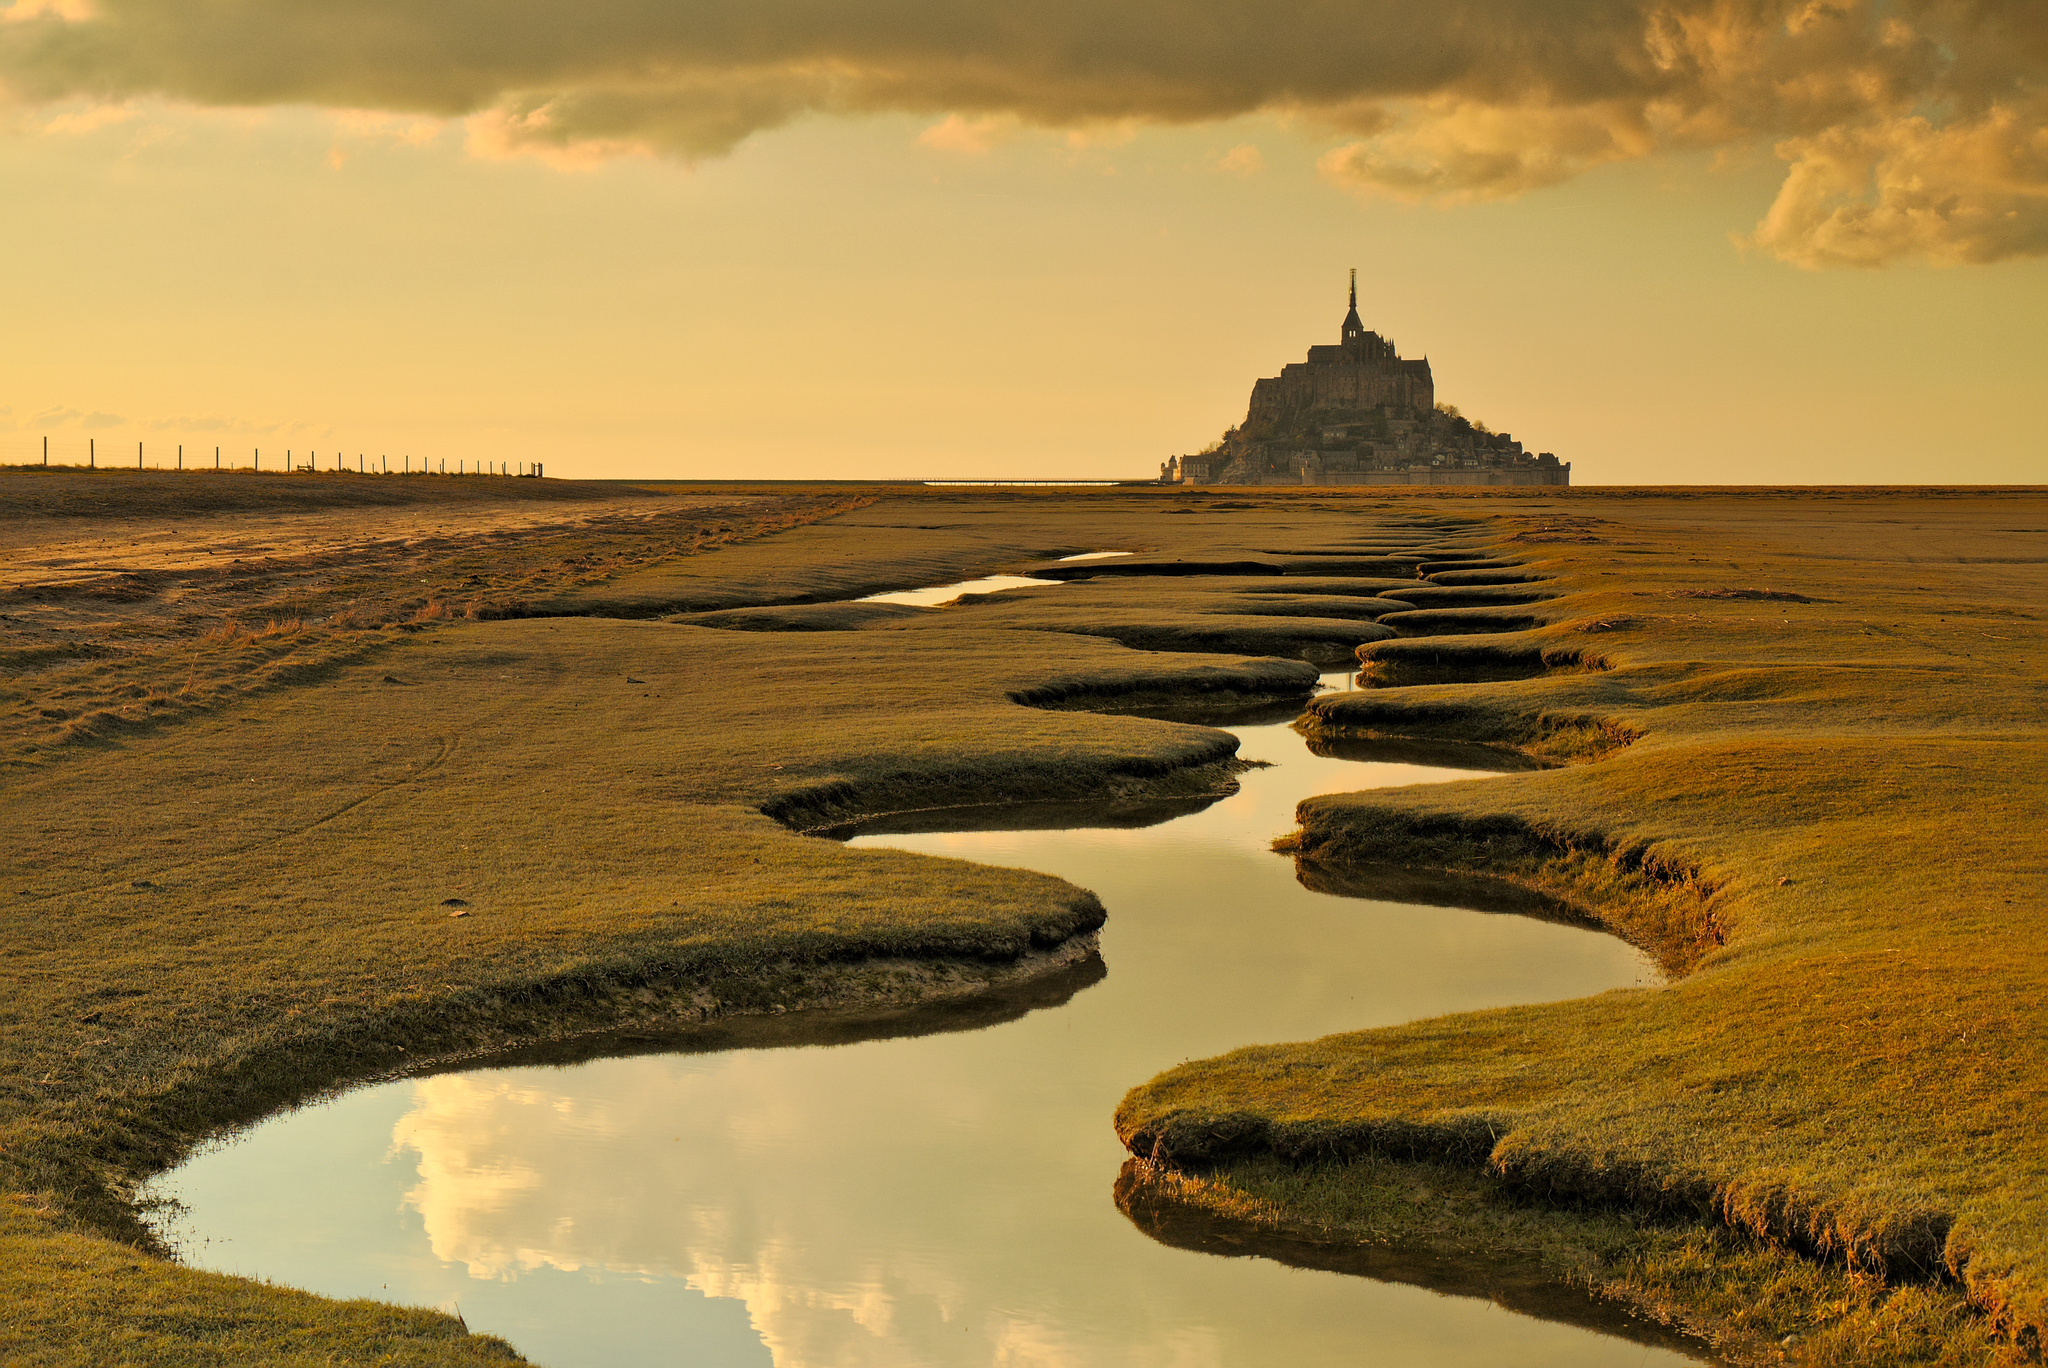 Mont Saint-Michel river, France